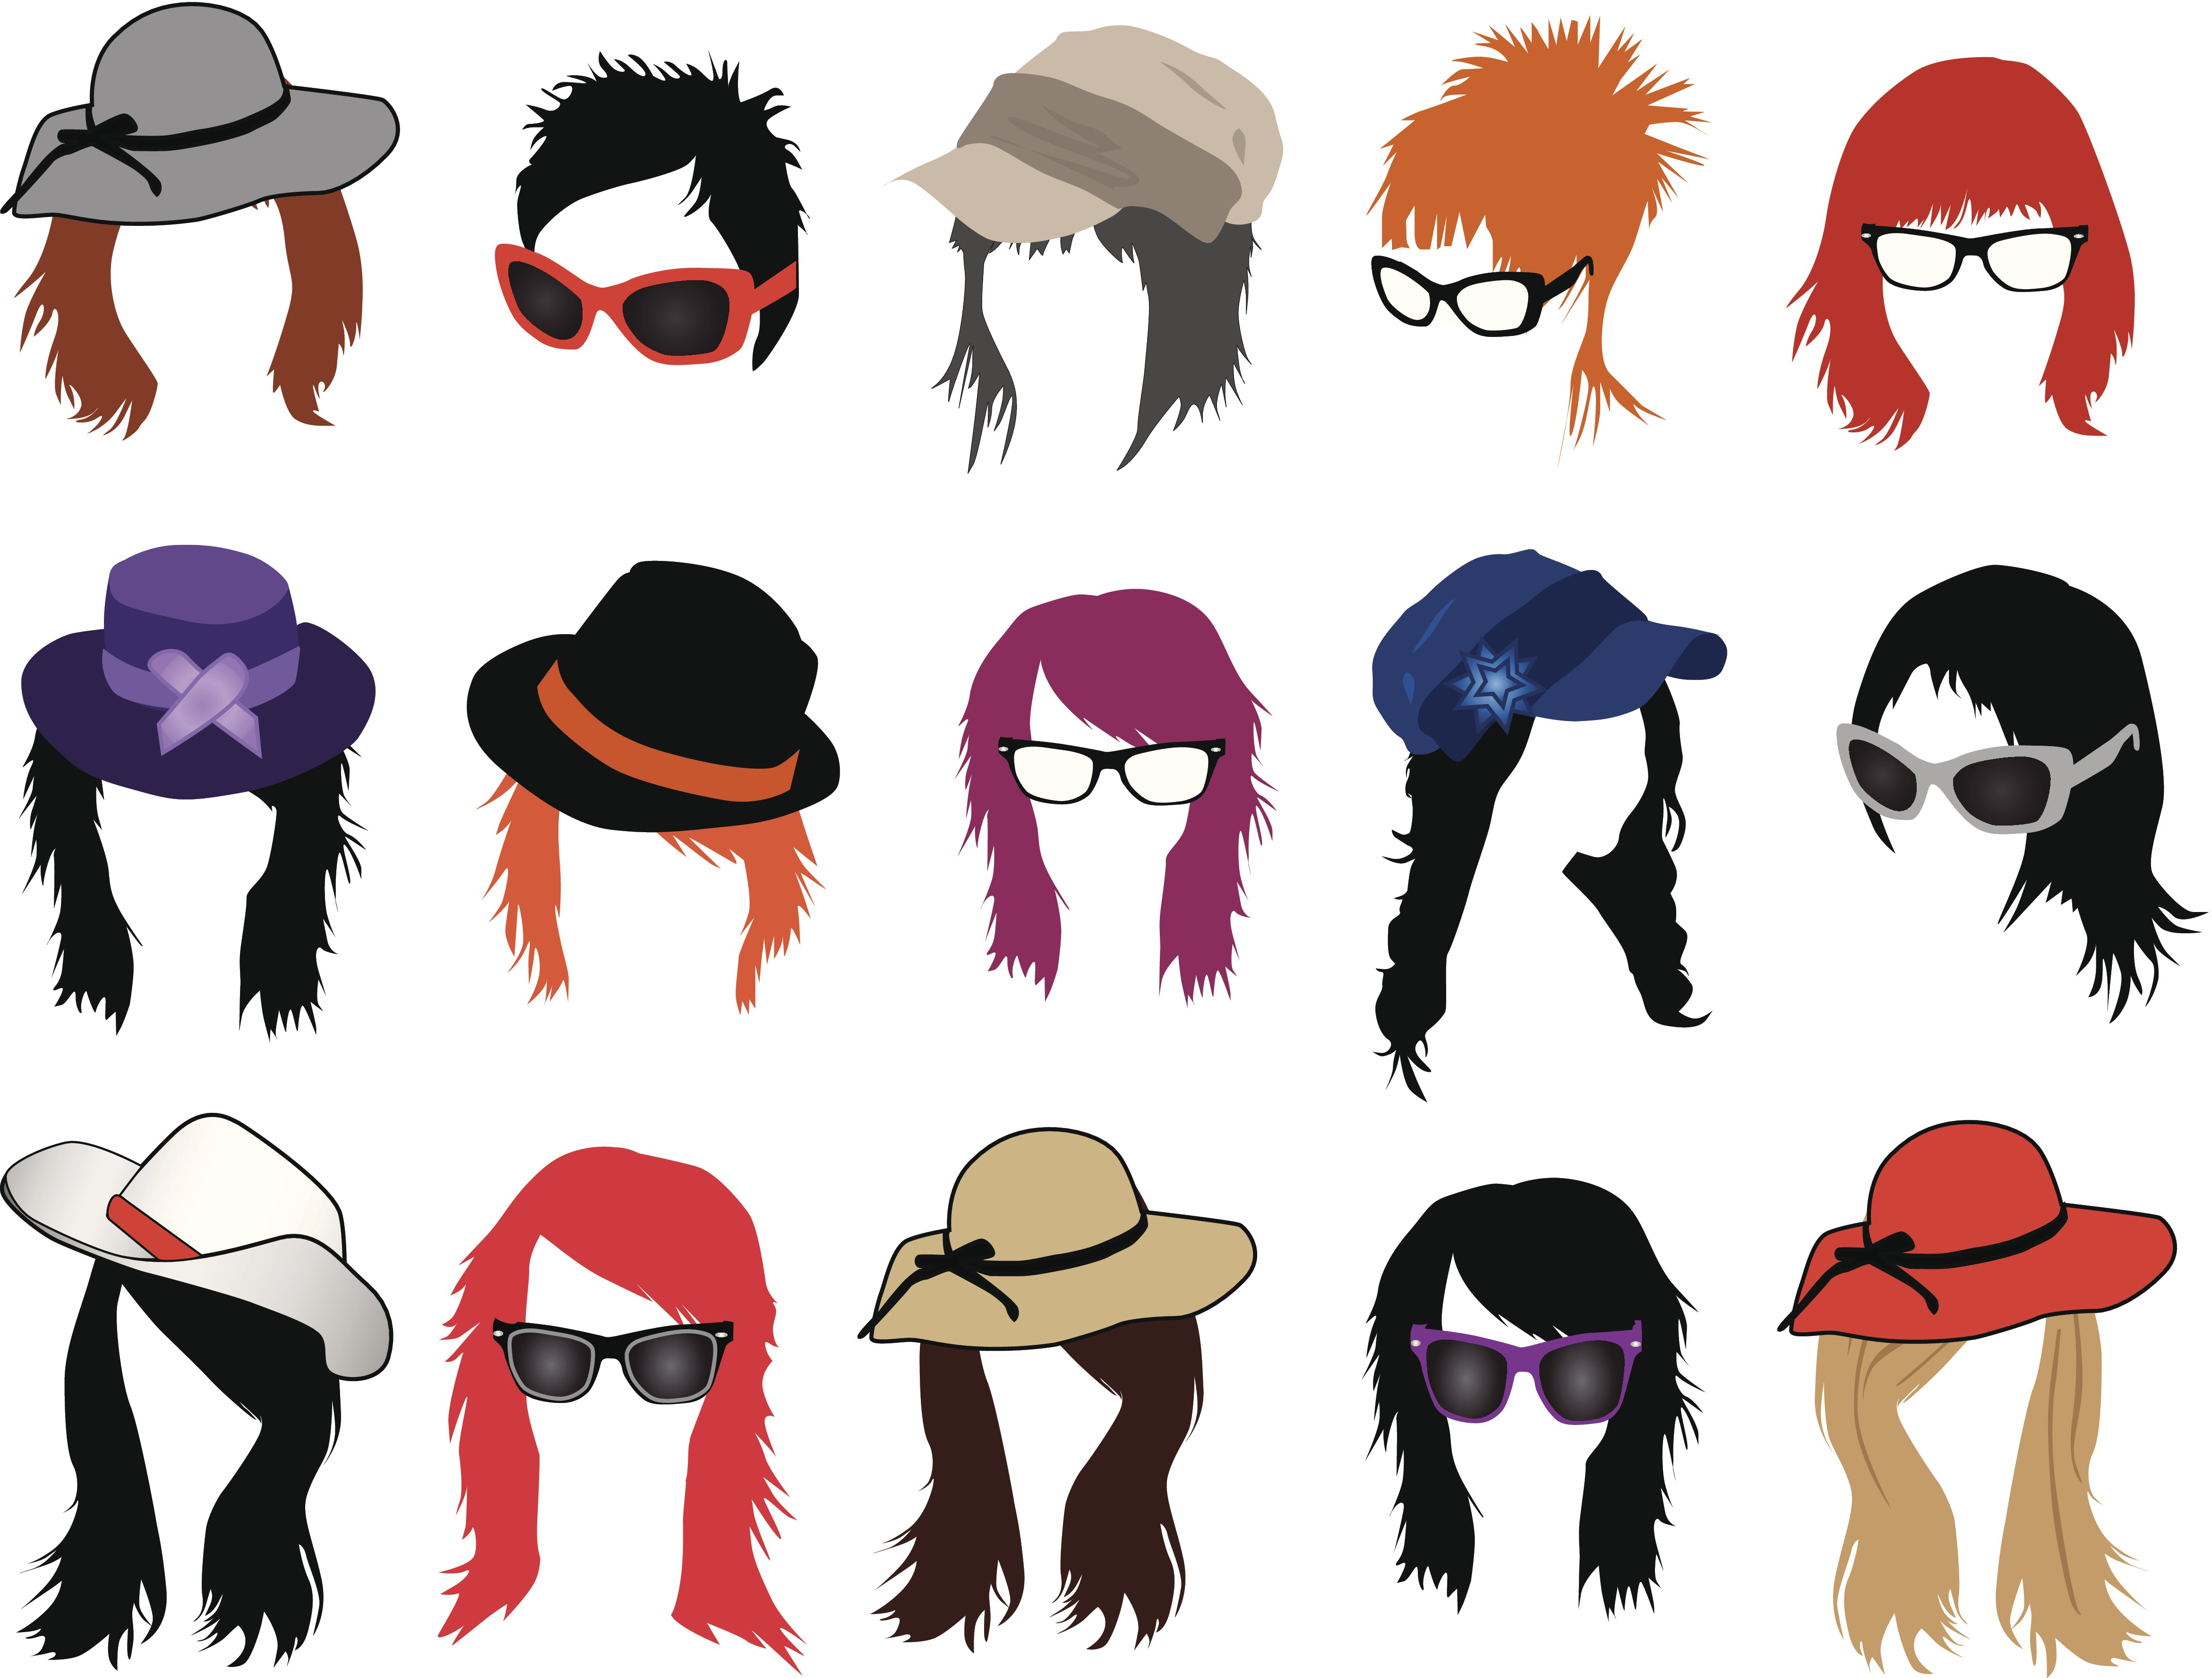 Afro clipart crazy wig. Fun facts hair solutions